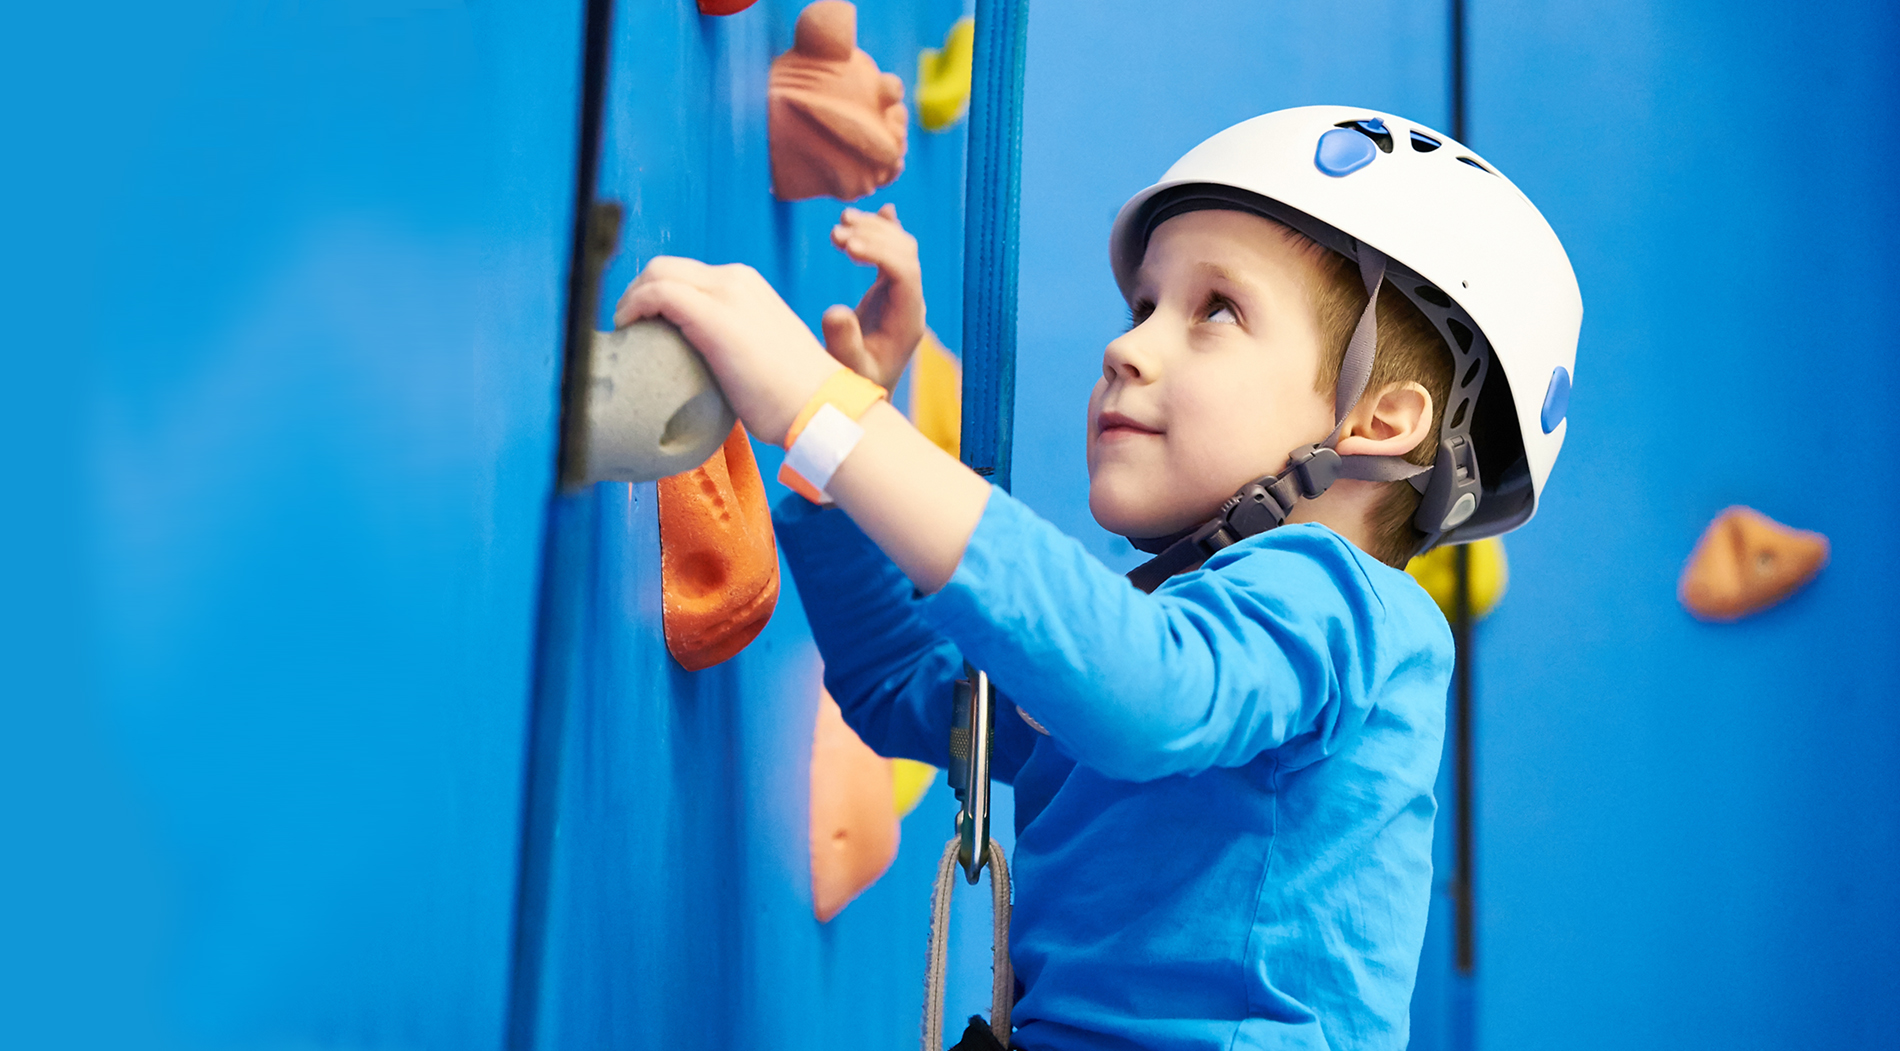 Arrampica climbing wall services and training for schools and education